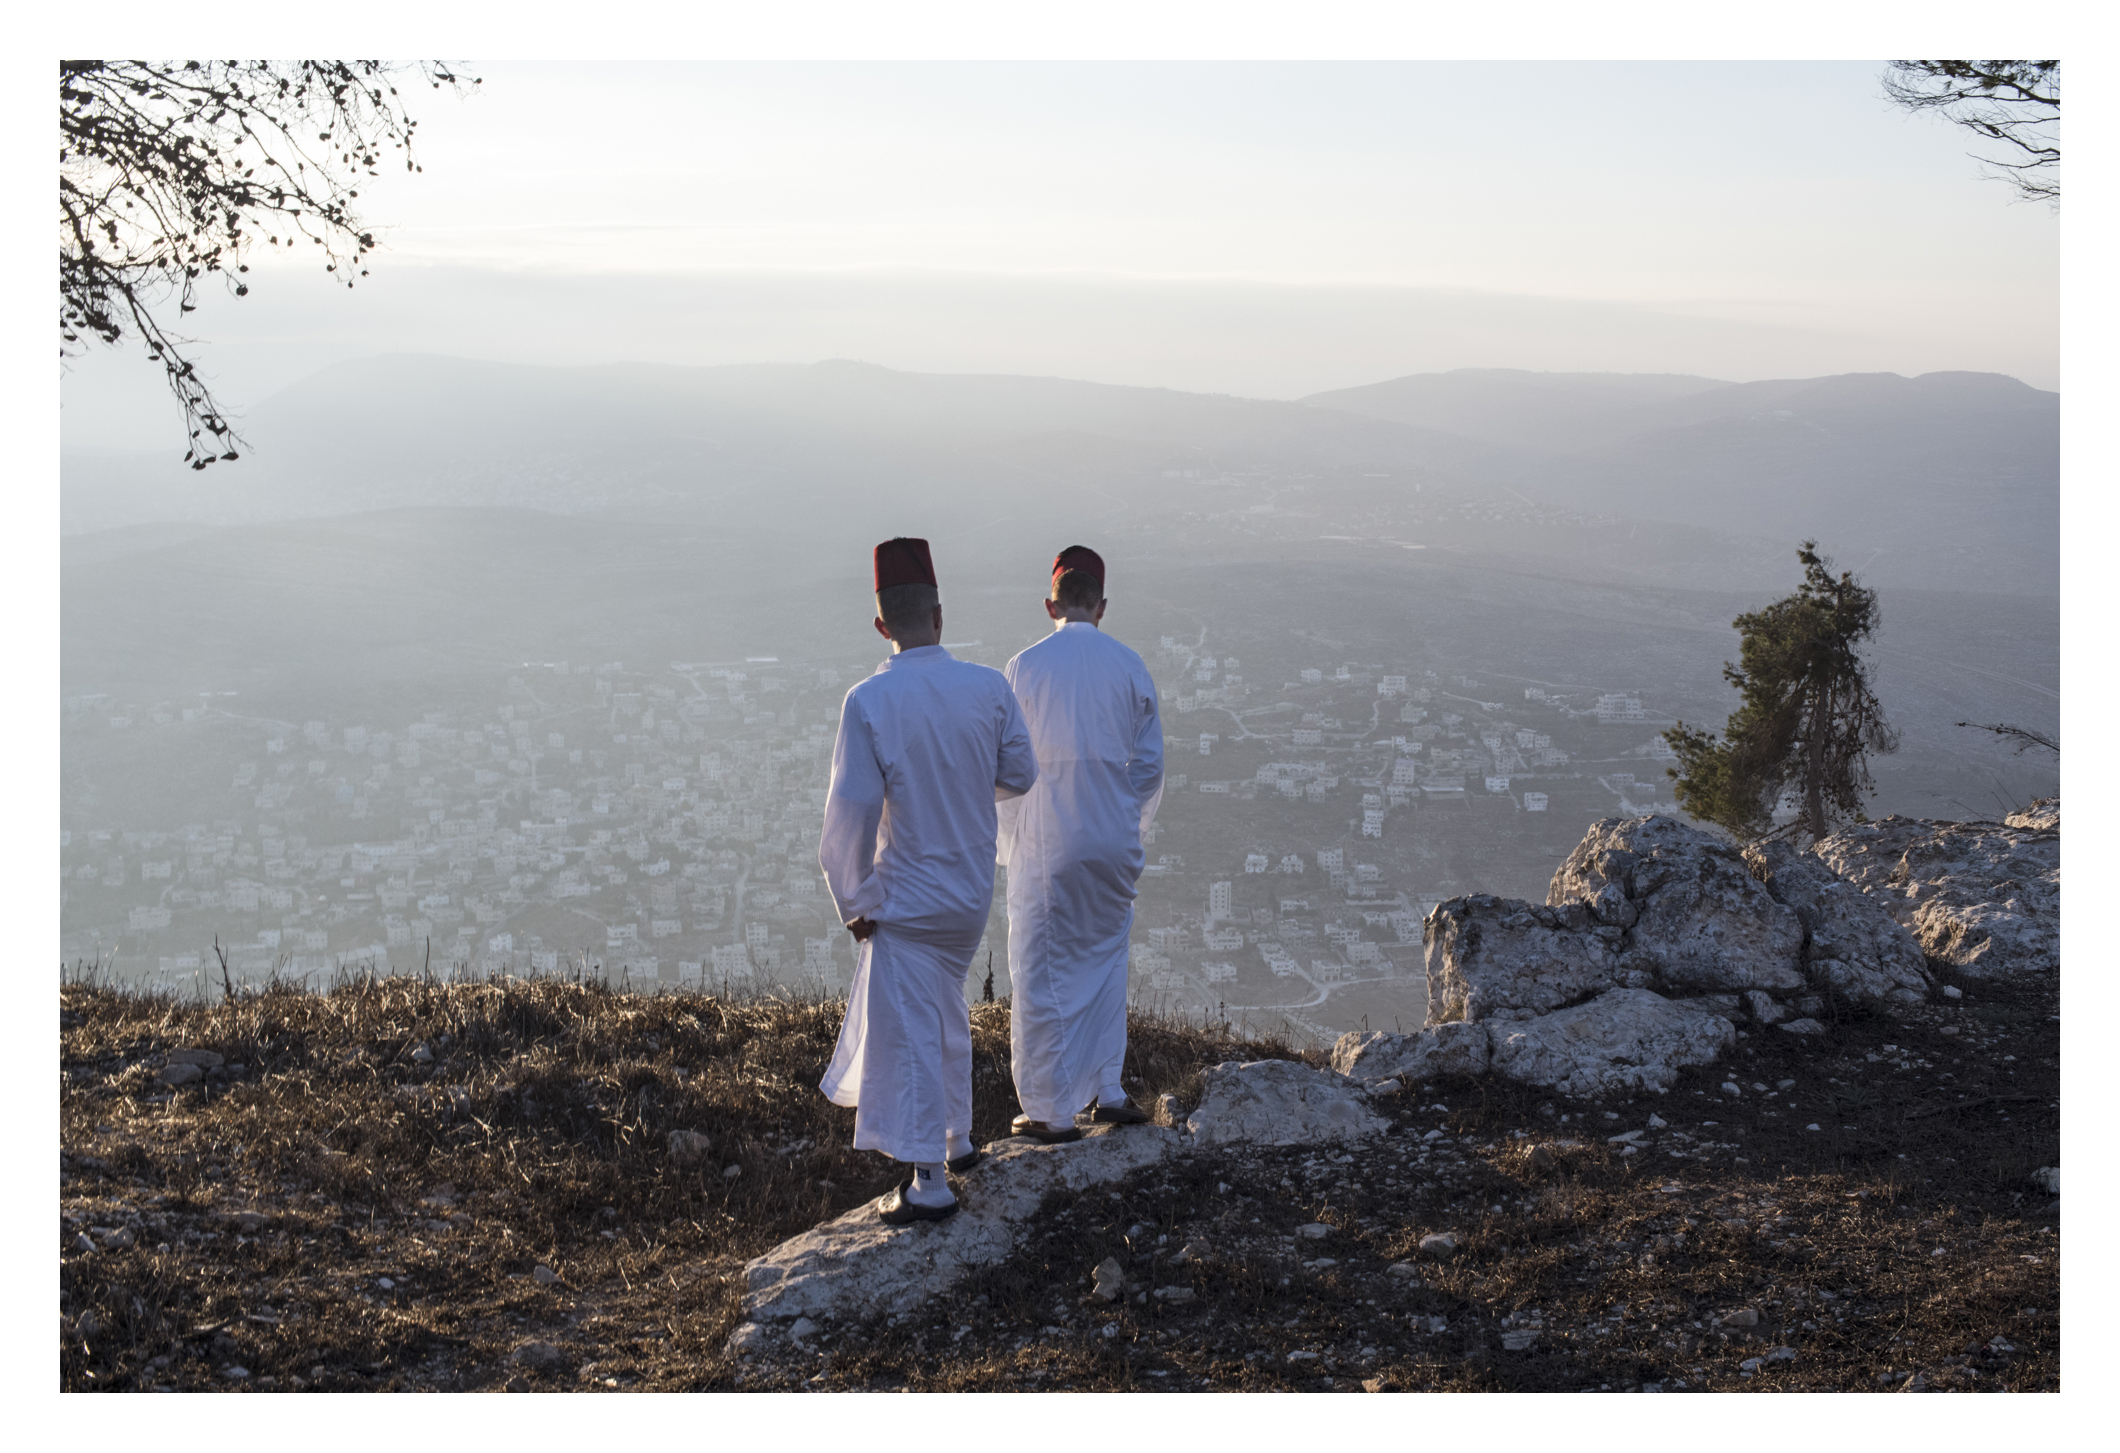 After the final prayer with book , youth of assorted ages and men take a pause on mountain and relax, overlooking the view of mountain after sunrise. Here, they are standing near the enclosed area they say is where Isaac's father was tested for sacrifice. (daniel, please read)Share a deep dive into the world of the Samaritans, an ancient sect in the West Bank. The story follows an Samaritan historian/spokesperson as he tries to find some valuable antiquities that were stolen from their temple. The story is about ancient bible manuscripts stolen from the Samaritans' synagogue in the West Bank, and the quest to track them down and discover who stole them. The story goes deep into the world of the Samaritans, one of the world's oldest and smallest religious sects, and how their ancient Torah manuscripts are central to their identity. The sunrise pilgrimage on Wednesday is a dramatic visual example of what makes this sect unique and mysterious, and why they prize their Torah manuscripts, with a  Samaritan priest thrusting a silver-cased Torah scroll into the air as Samaritans surround him atop their sacred mountain. Currently, the population of Samaritans living in the community in Mt Gerizim is  800, and they only do an exact count each January 1. The numbers will be updated by end of this year. It all begins in the Mt Gerizim synagogue, wailing and praying from 2 am before they leave and begin marching to peak of sacred mountain.This happens just before sunrise, at 4/4:30, for hours of prayers and rituals around the sacred book, along with a stunning sunrise pilgrimage on the Samaritans' holy mountain. A Samaritan priest thrusts a silver-plated torah scroll toward the heavens, surrounded by the samaritans. Several times this repeats  during the service.